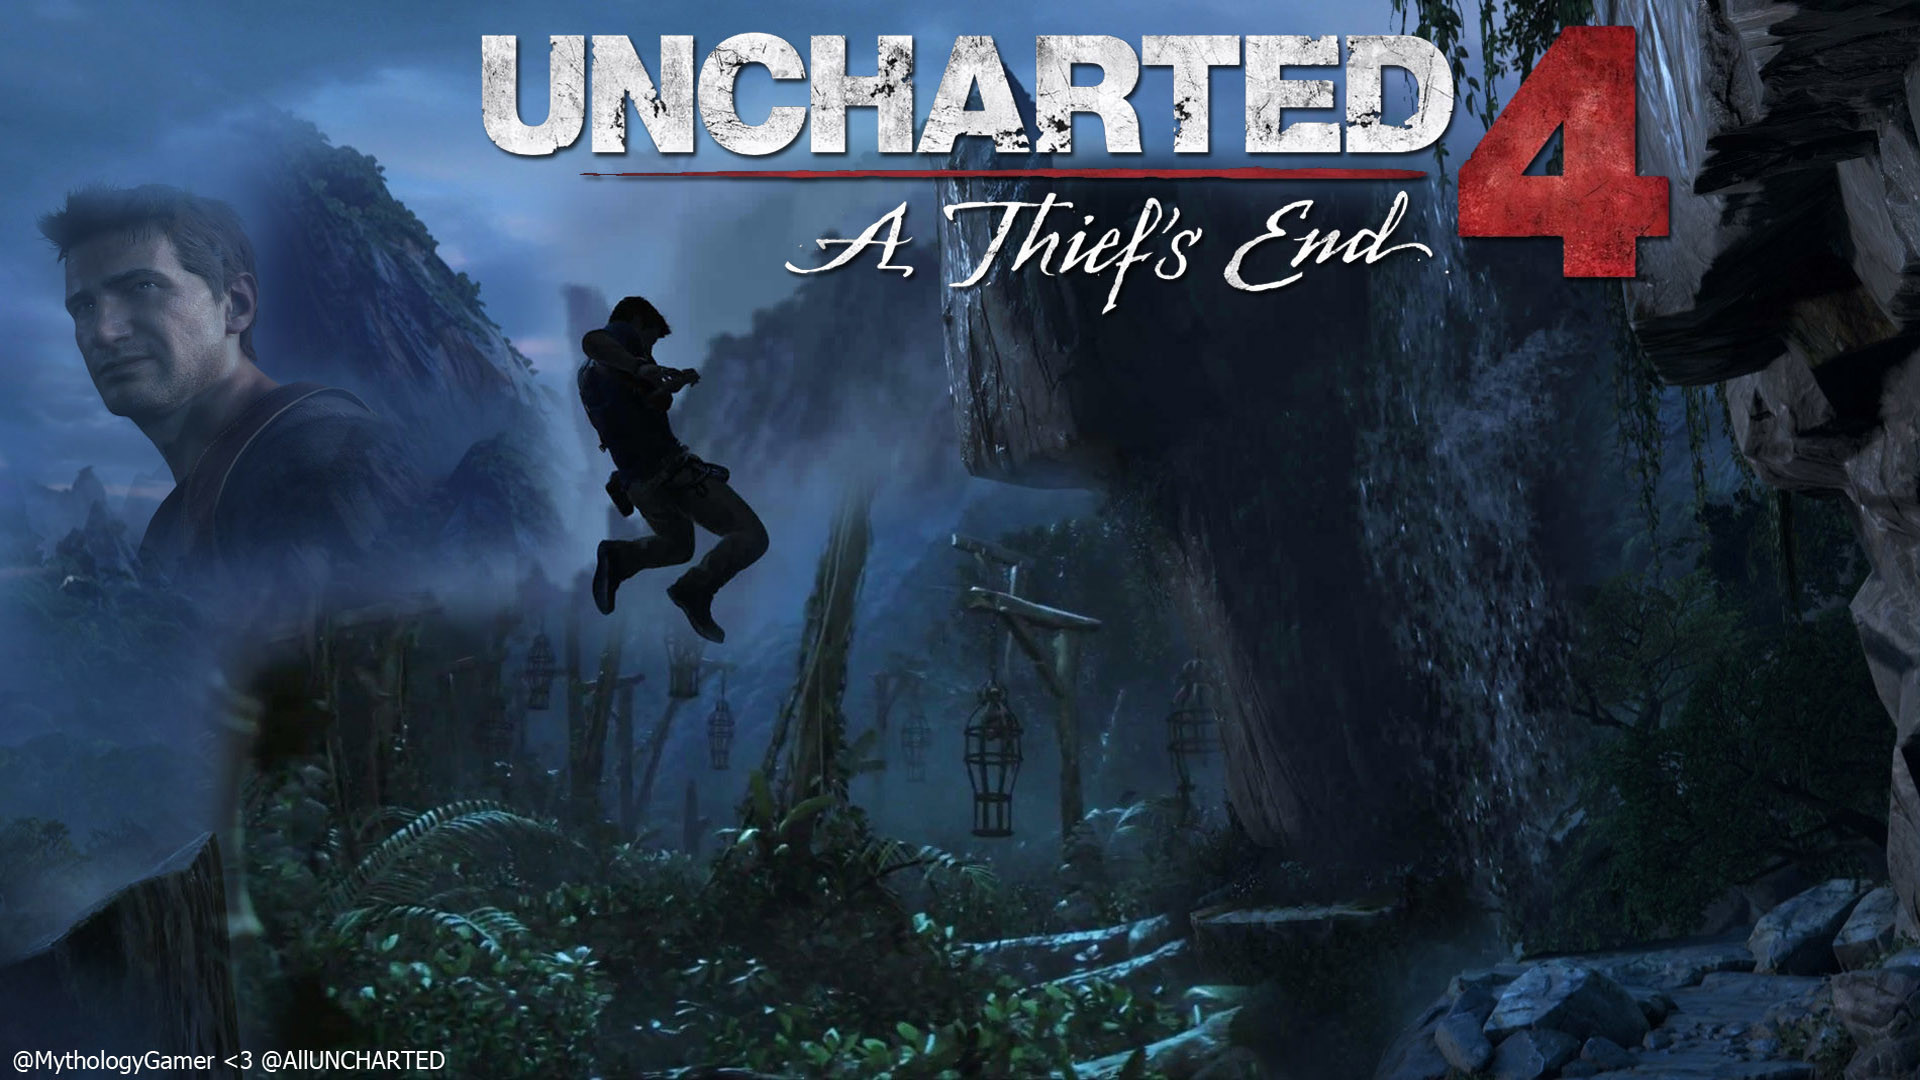 Uncharted 4 Wallpapers Uncharted 4 Wallpaper Full Hd